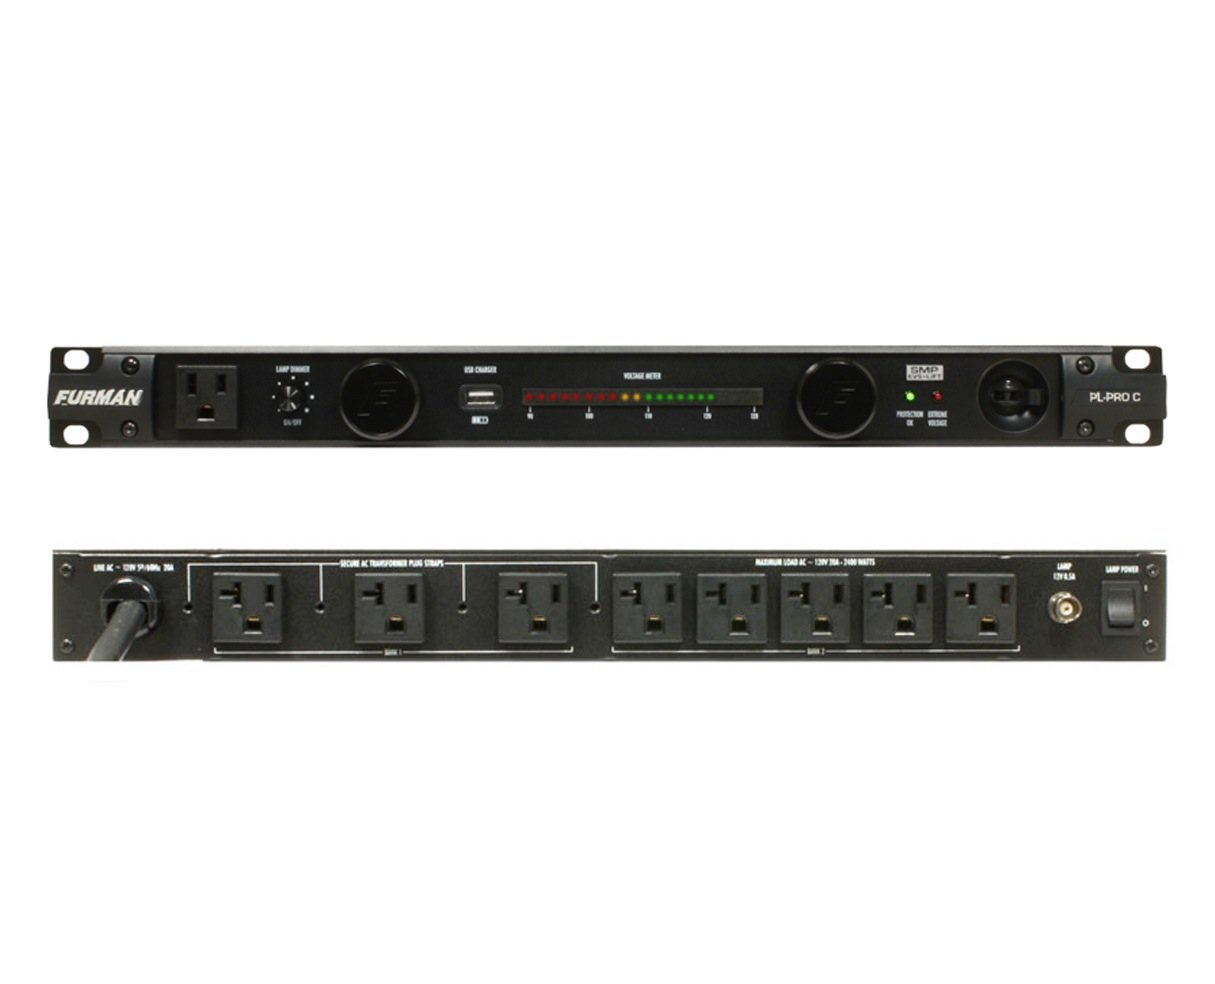 Furman PL-Pro C PL-PROC 20 Amp Power Conditioner with Lights and Voltmeter